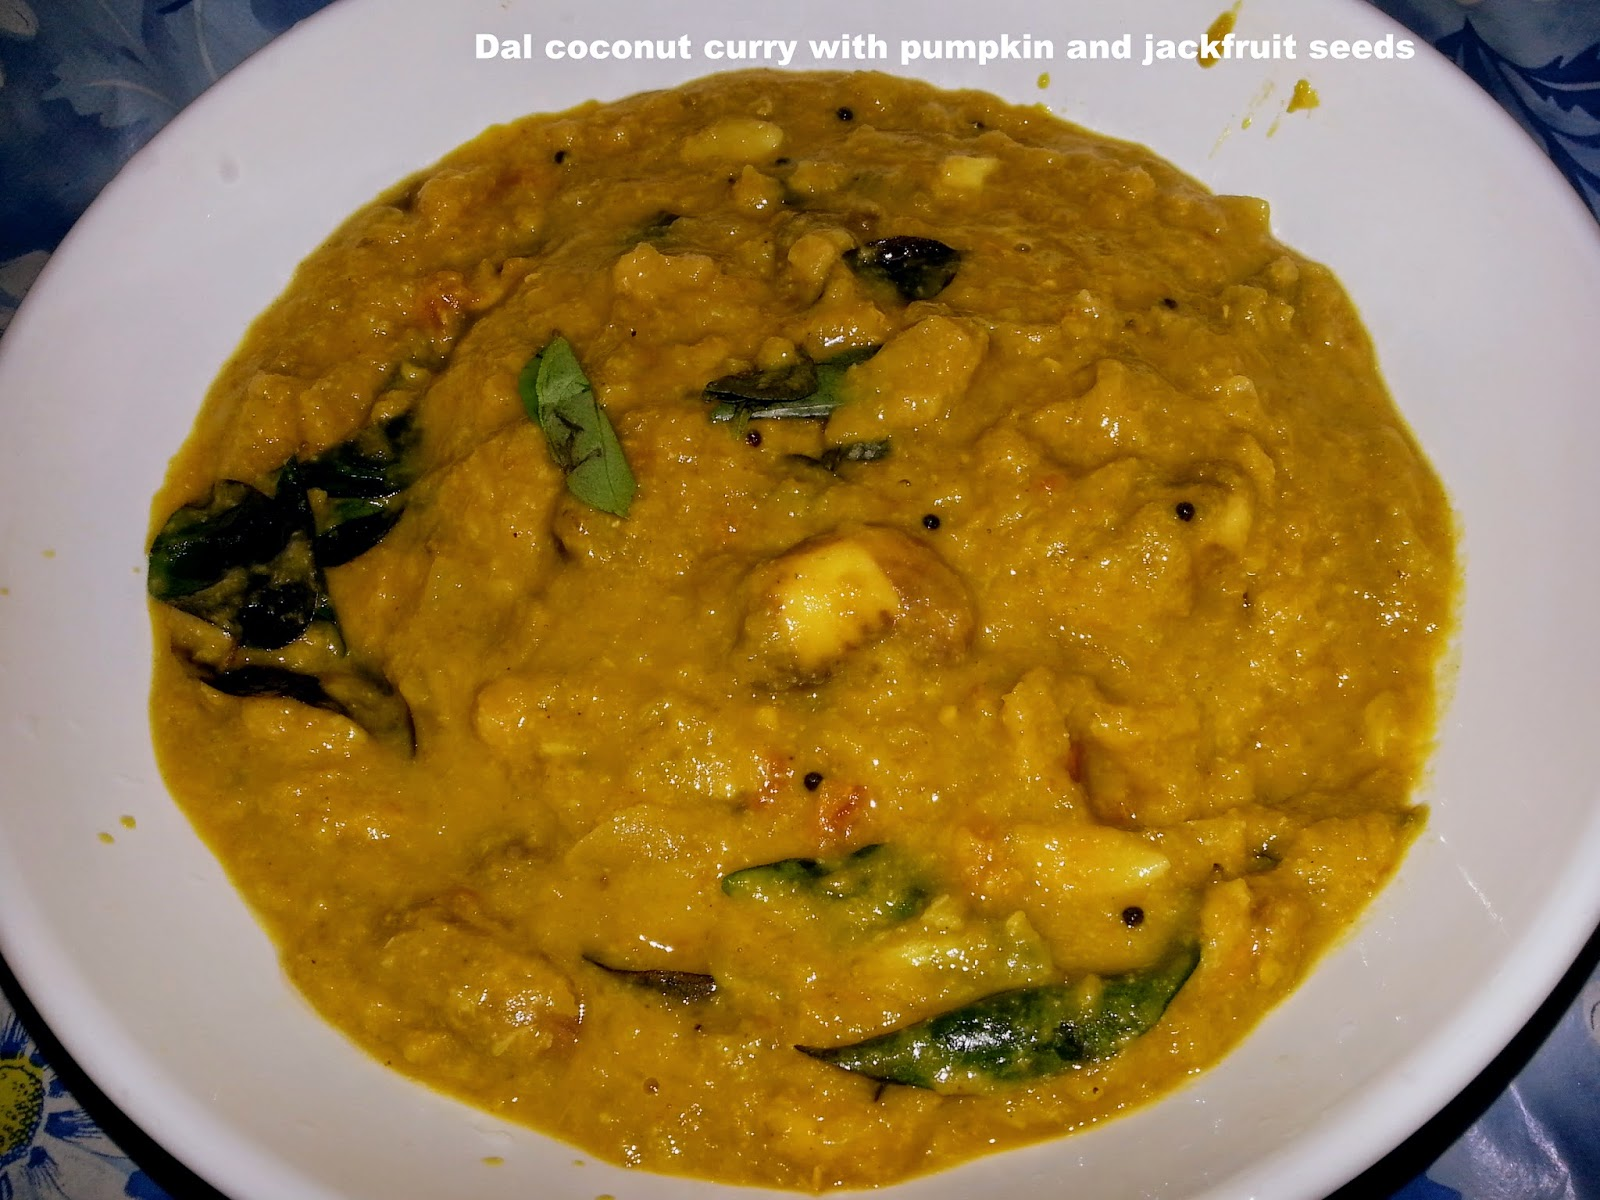 Fams culinary recipes kerala style coconut dal curry with pumpkin fams culinary recipes kerala style coconut dal curry with pumpkin and jackfruit seeds forumfinder Gallery